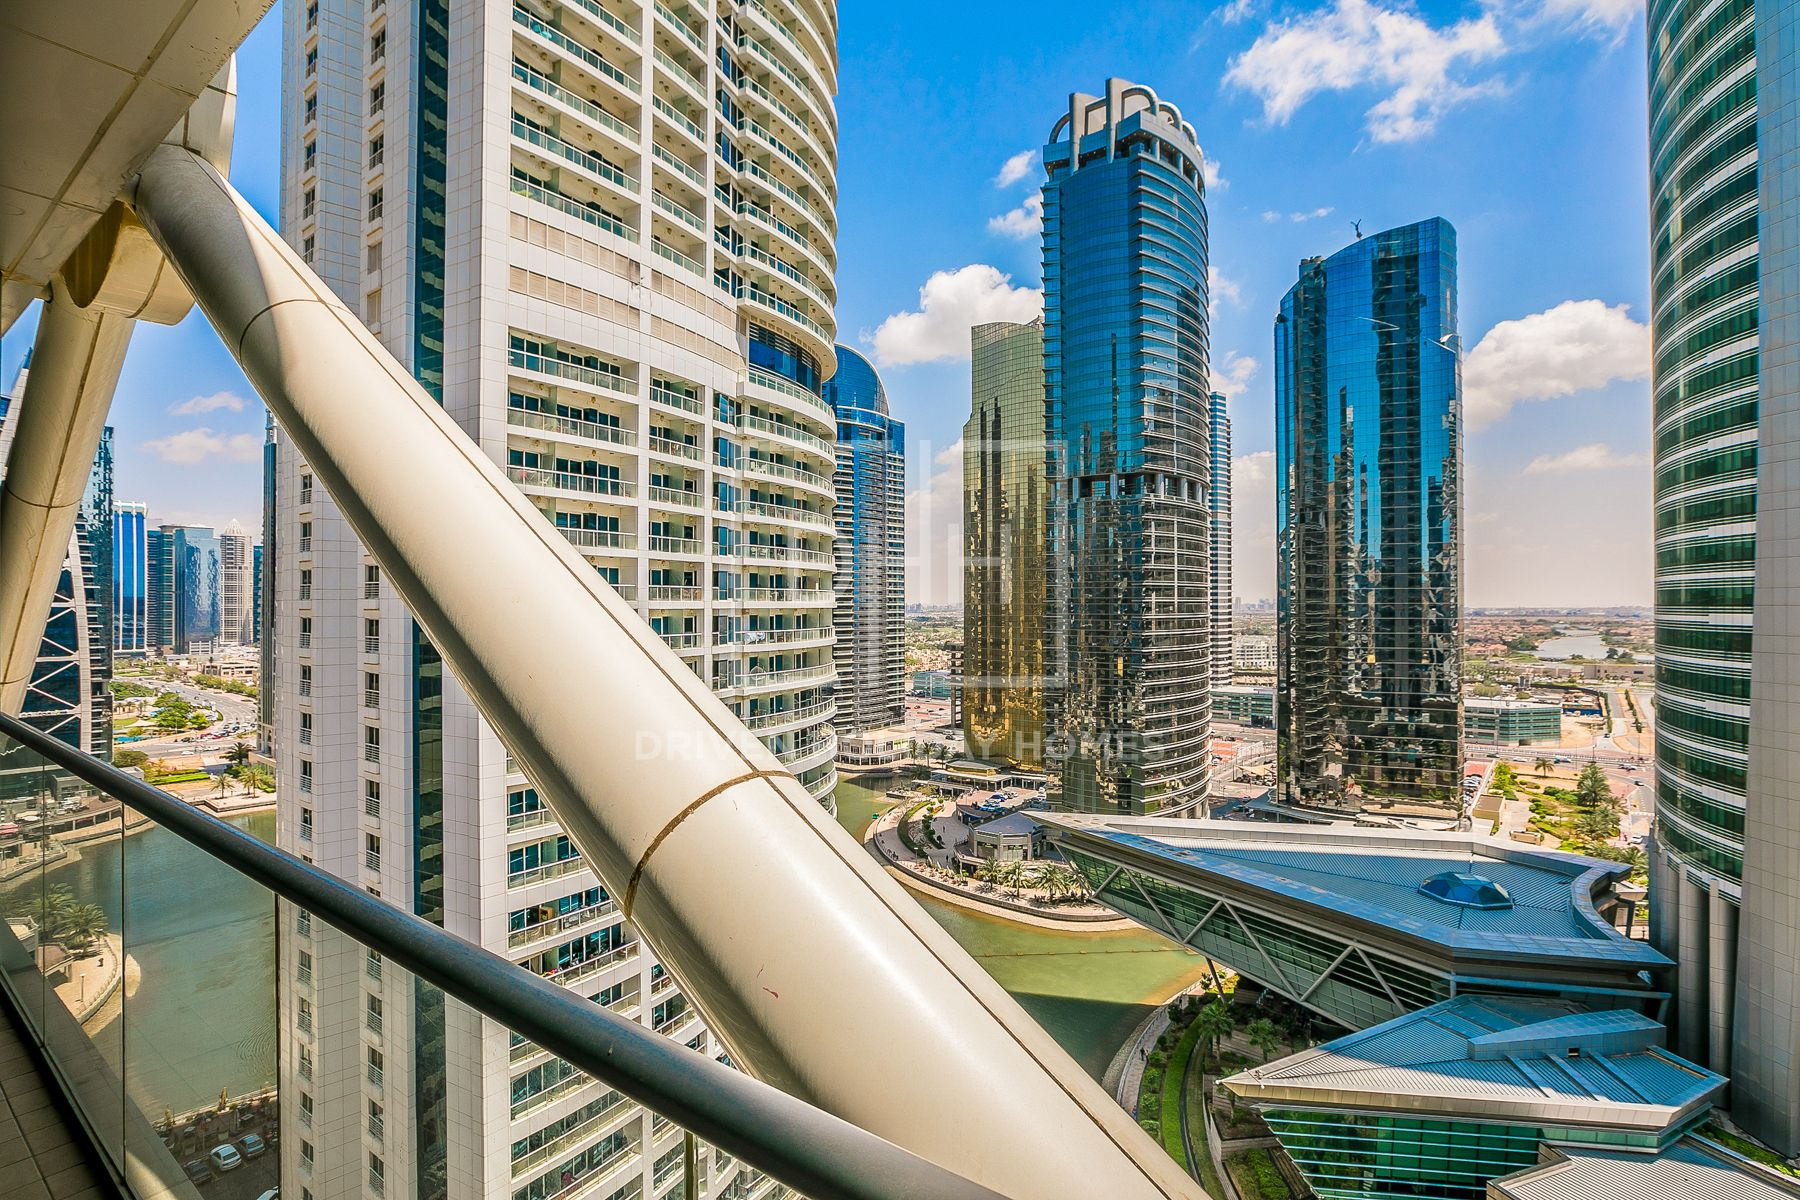 Studio for Rent in Indigo Tower - Jumeirah Lake Towers